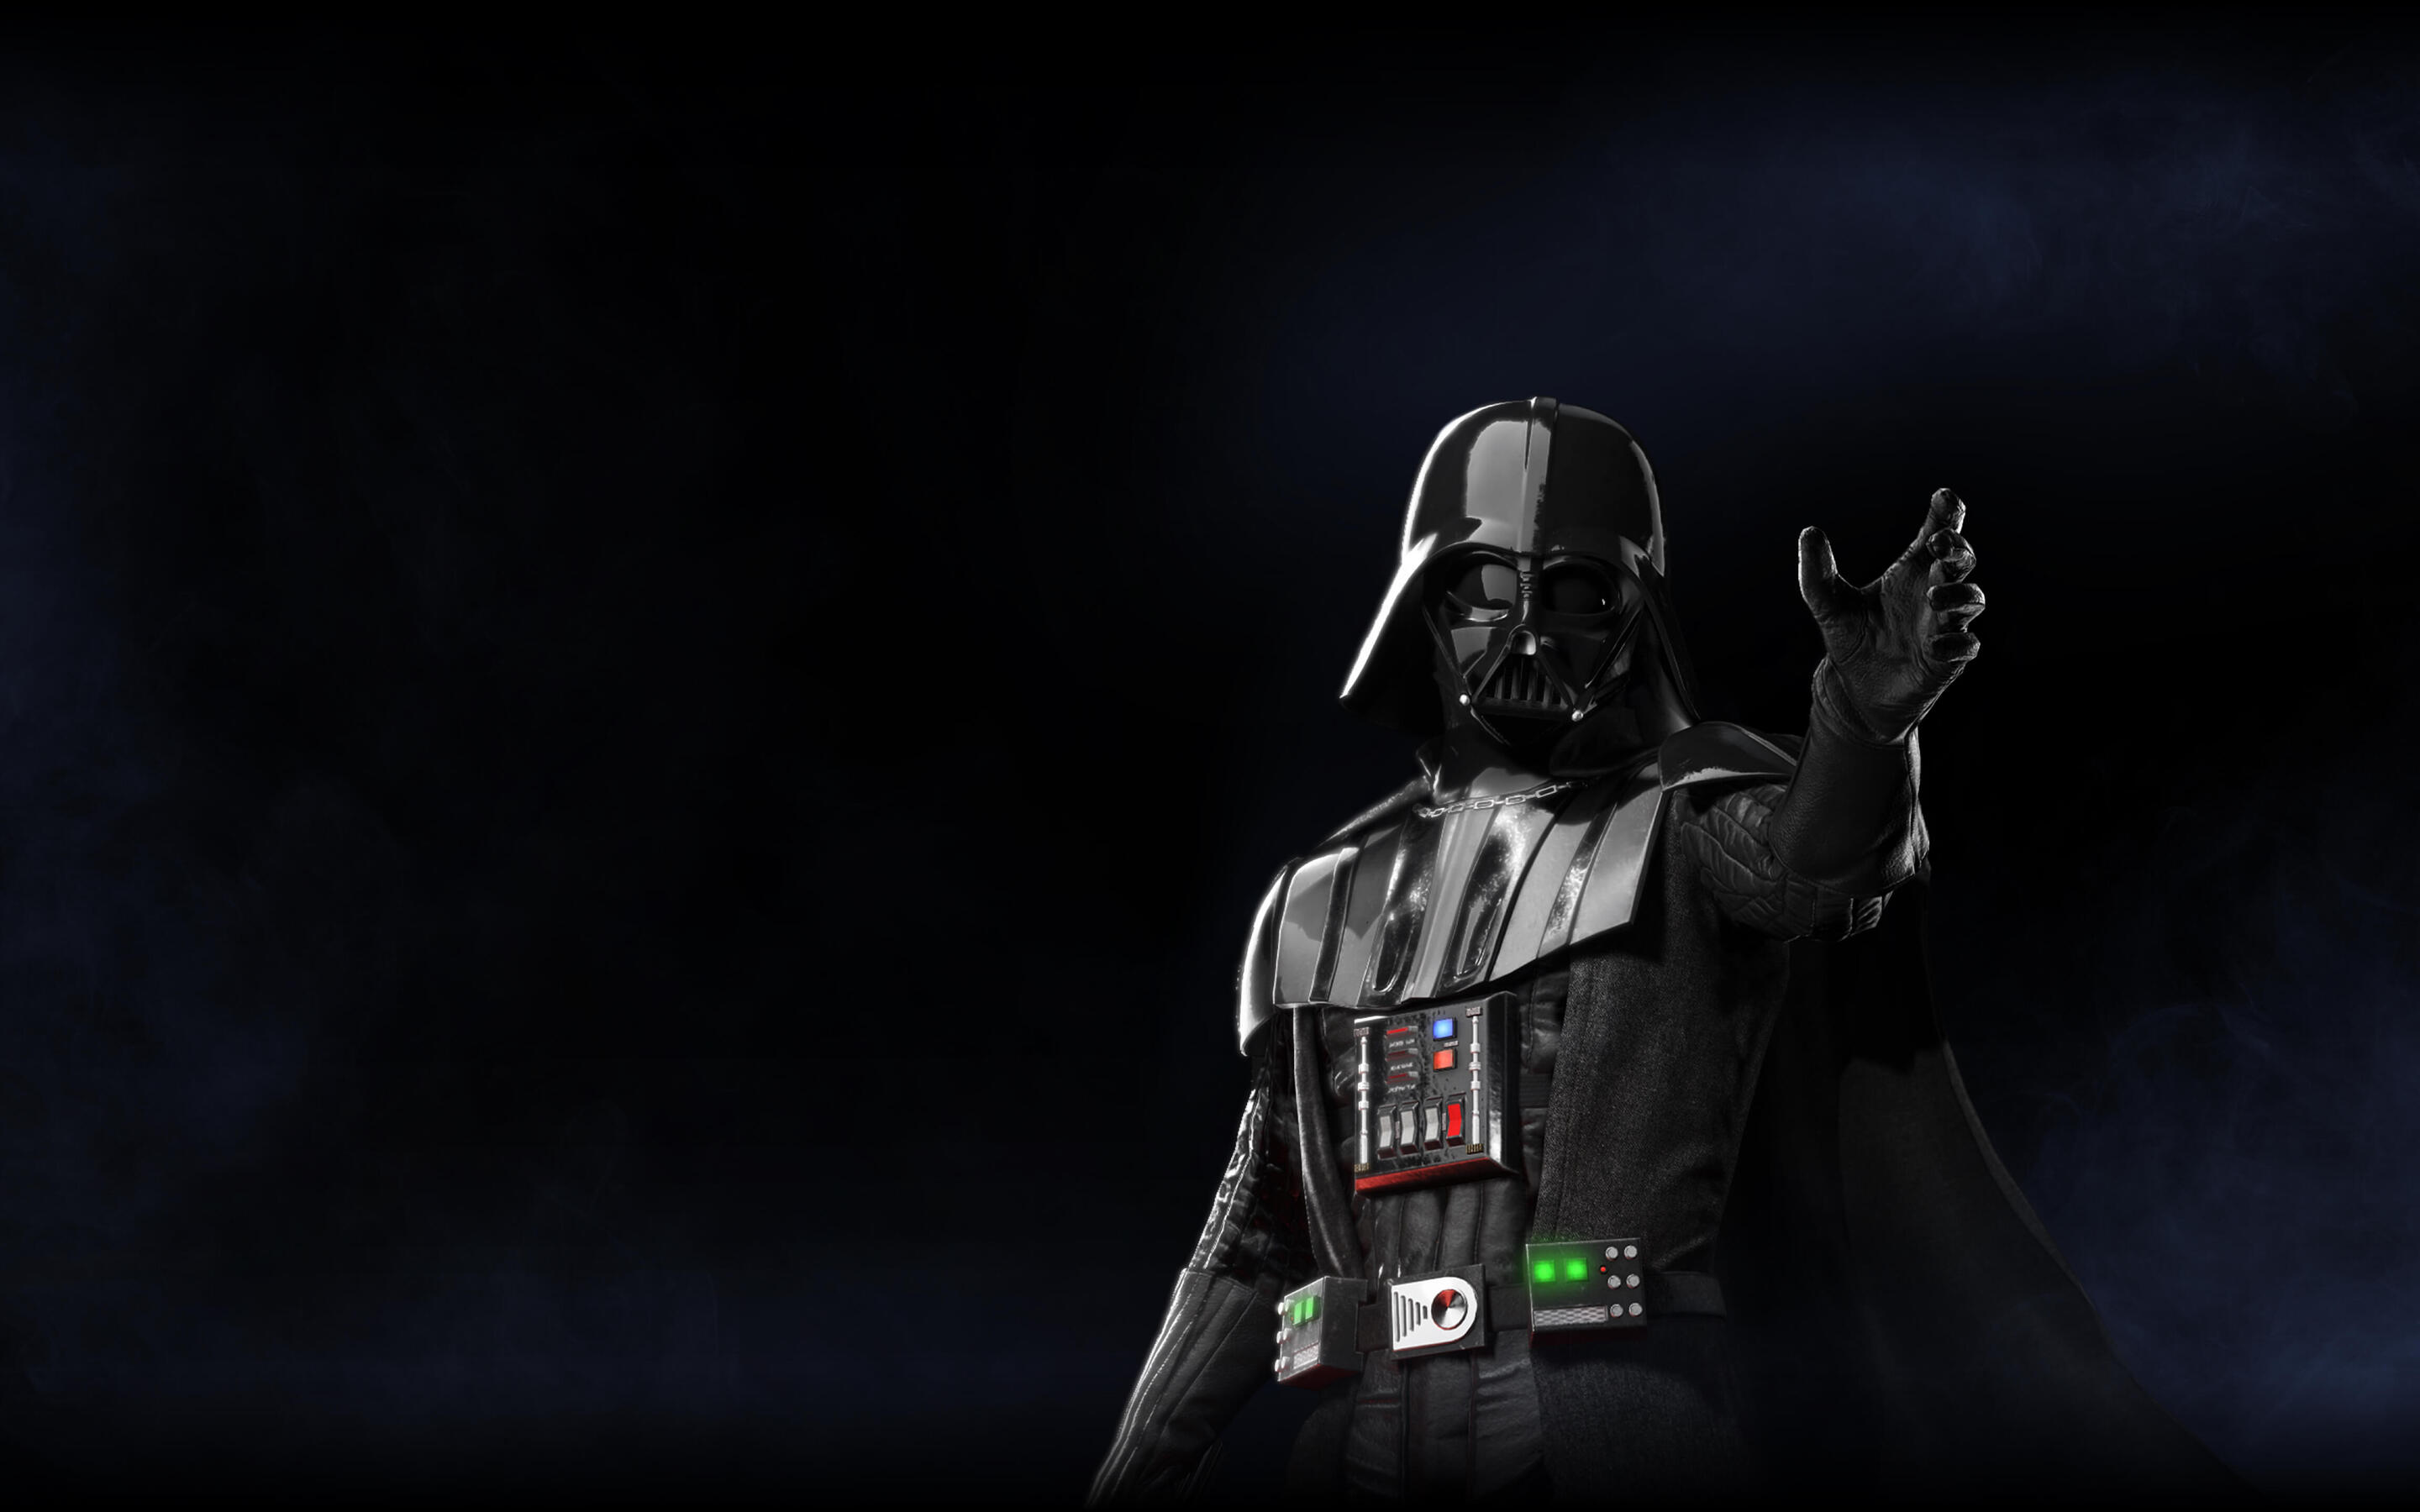 2880x1800 Darth Vader Star Wars Battlefront 2 Macbook Pro Retina HD 4k Wallpapers, Images, Backgrounds, Photos and Pictures